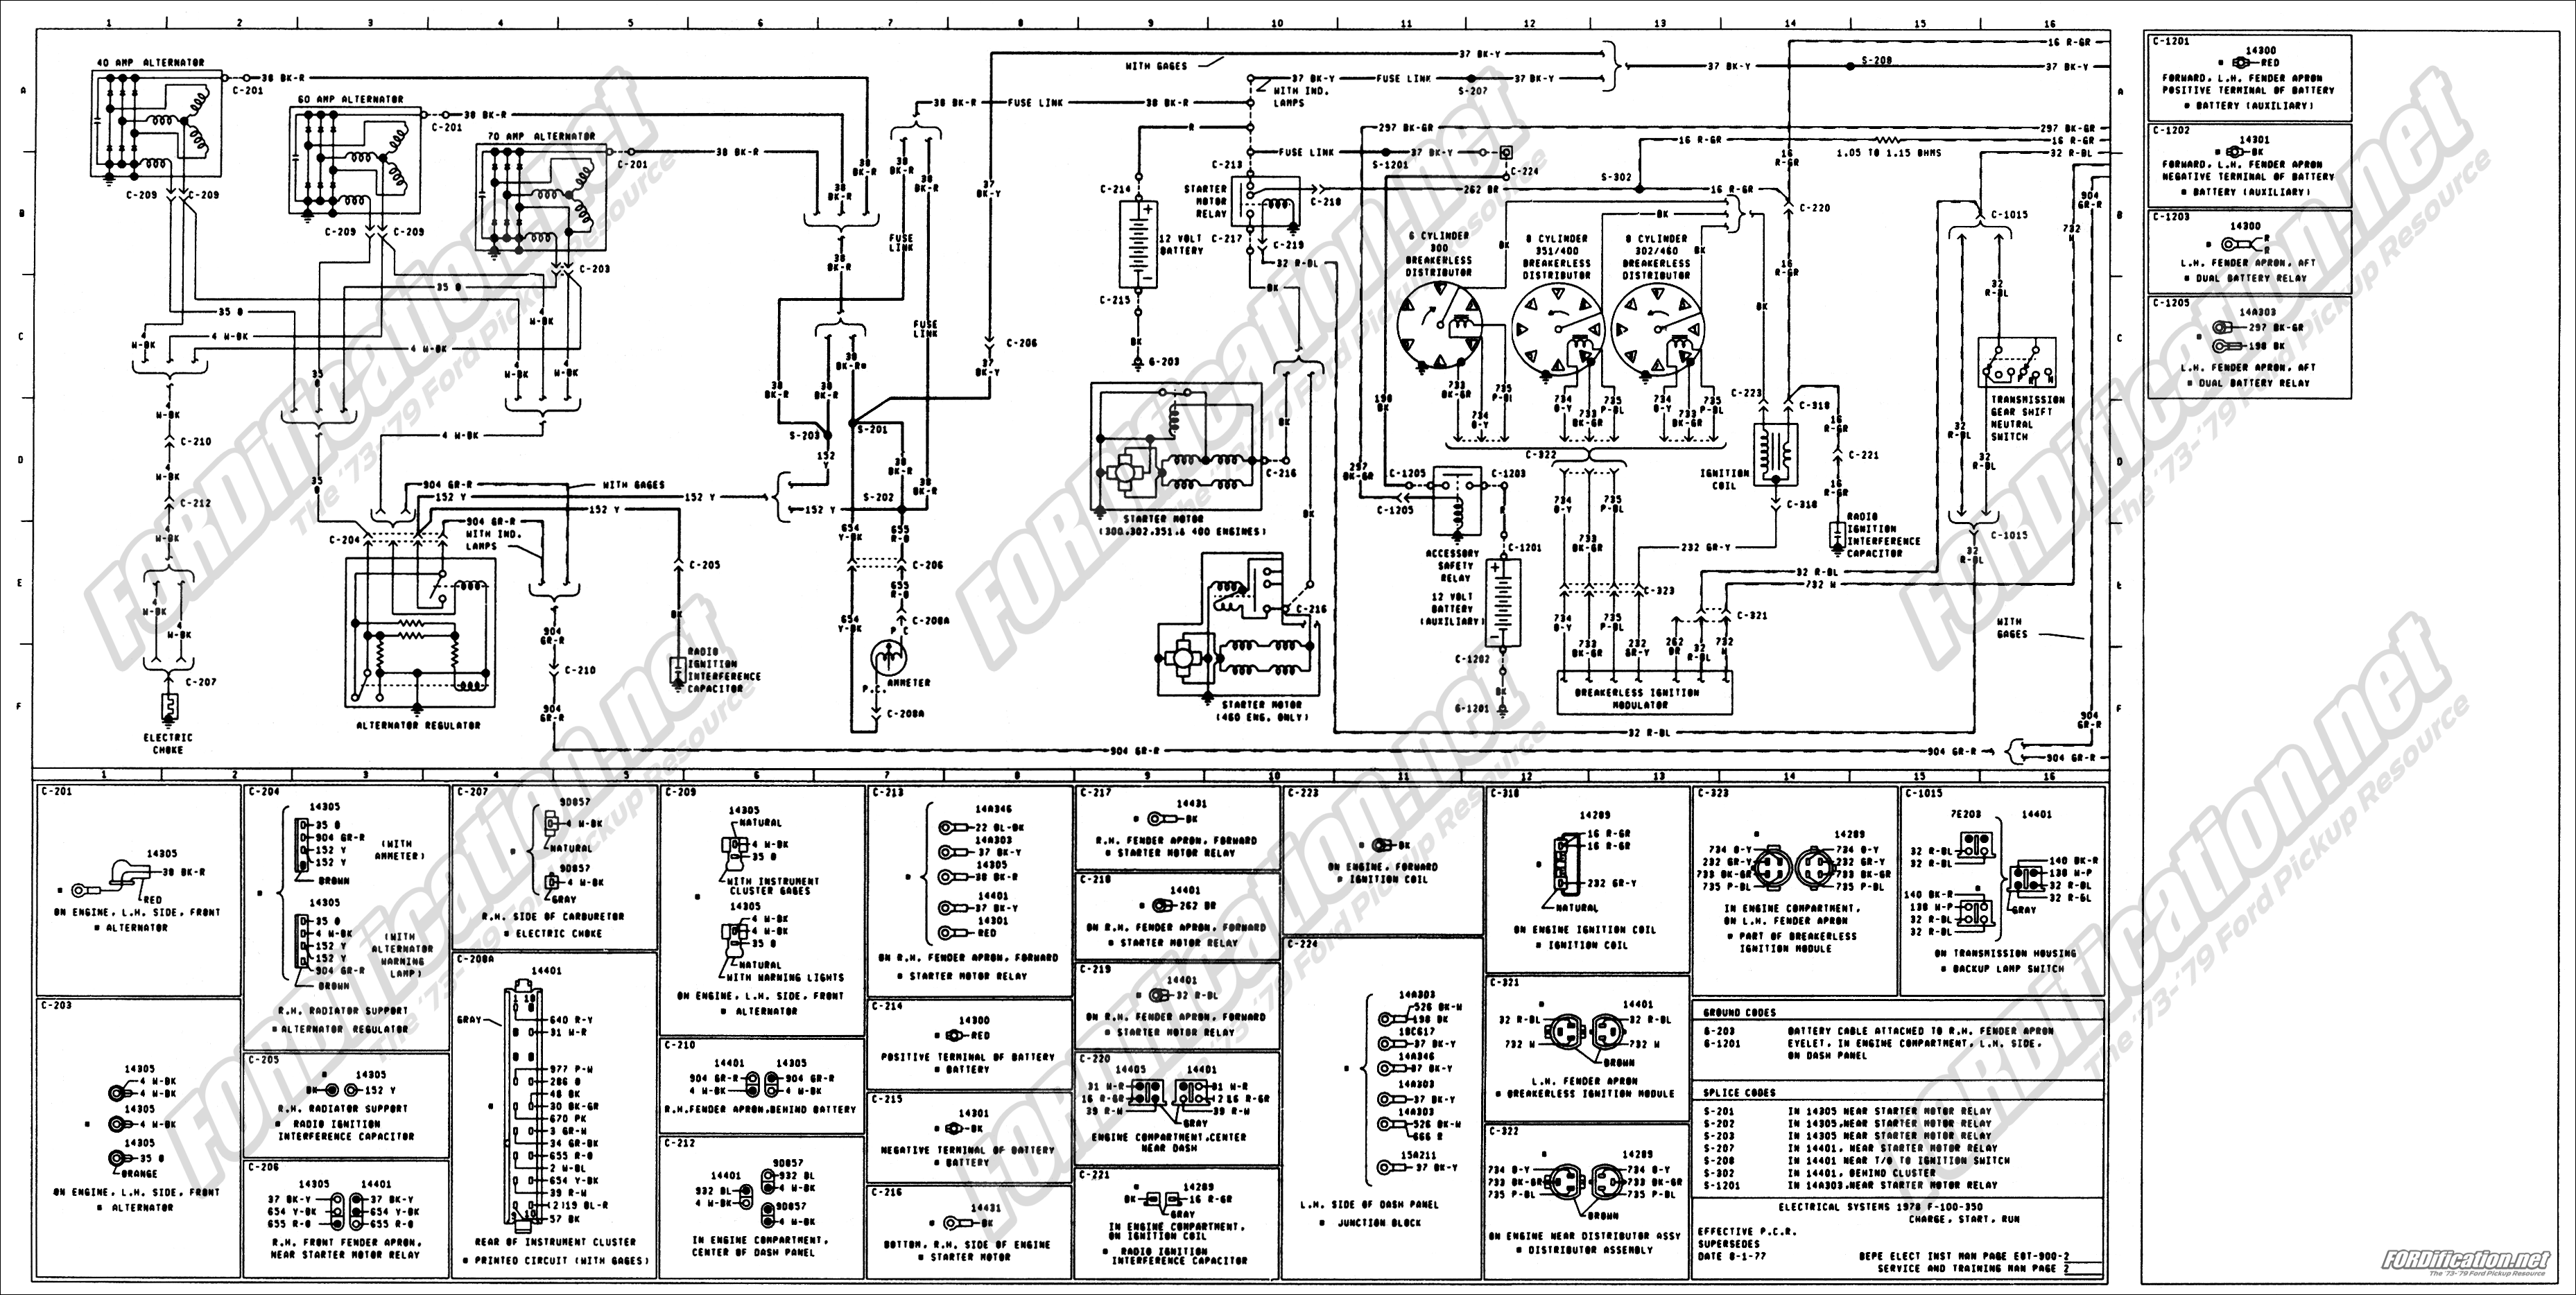 1977 ranchero wiring diagram wirdig wiring diagram furthermore bmw 2005 fuse box diagram on 1977 ford f